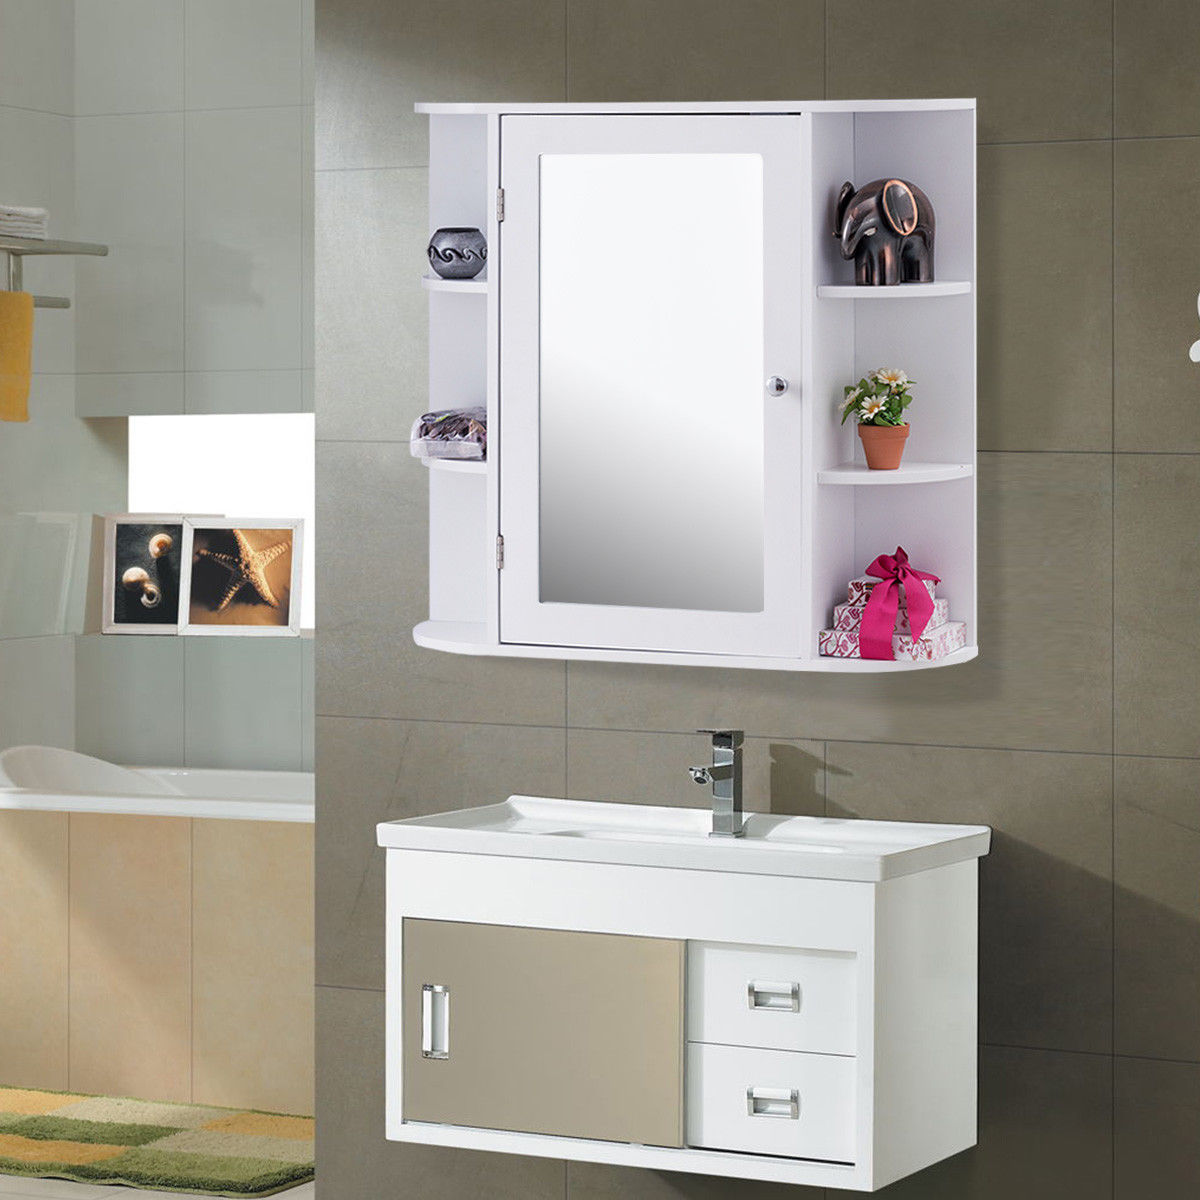 Wall Surface Bathroom Storage Cabinet